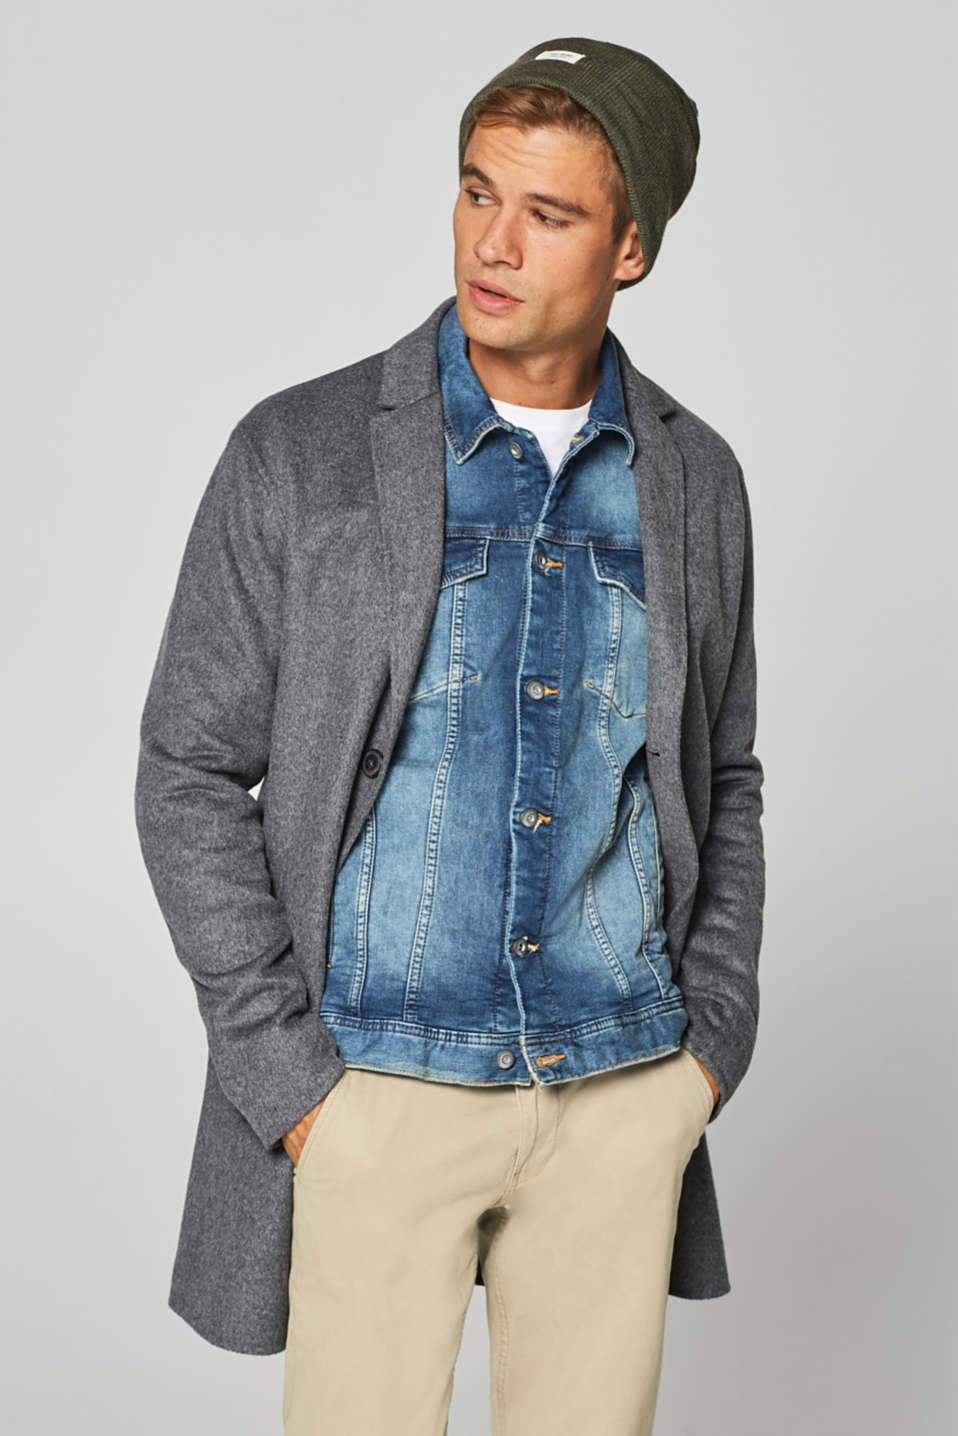 Denim jacket with vintage effects